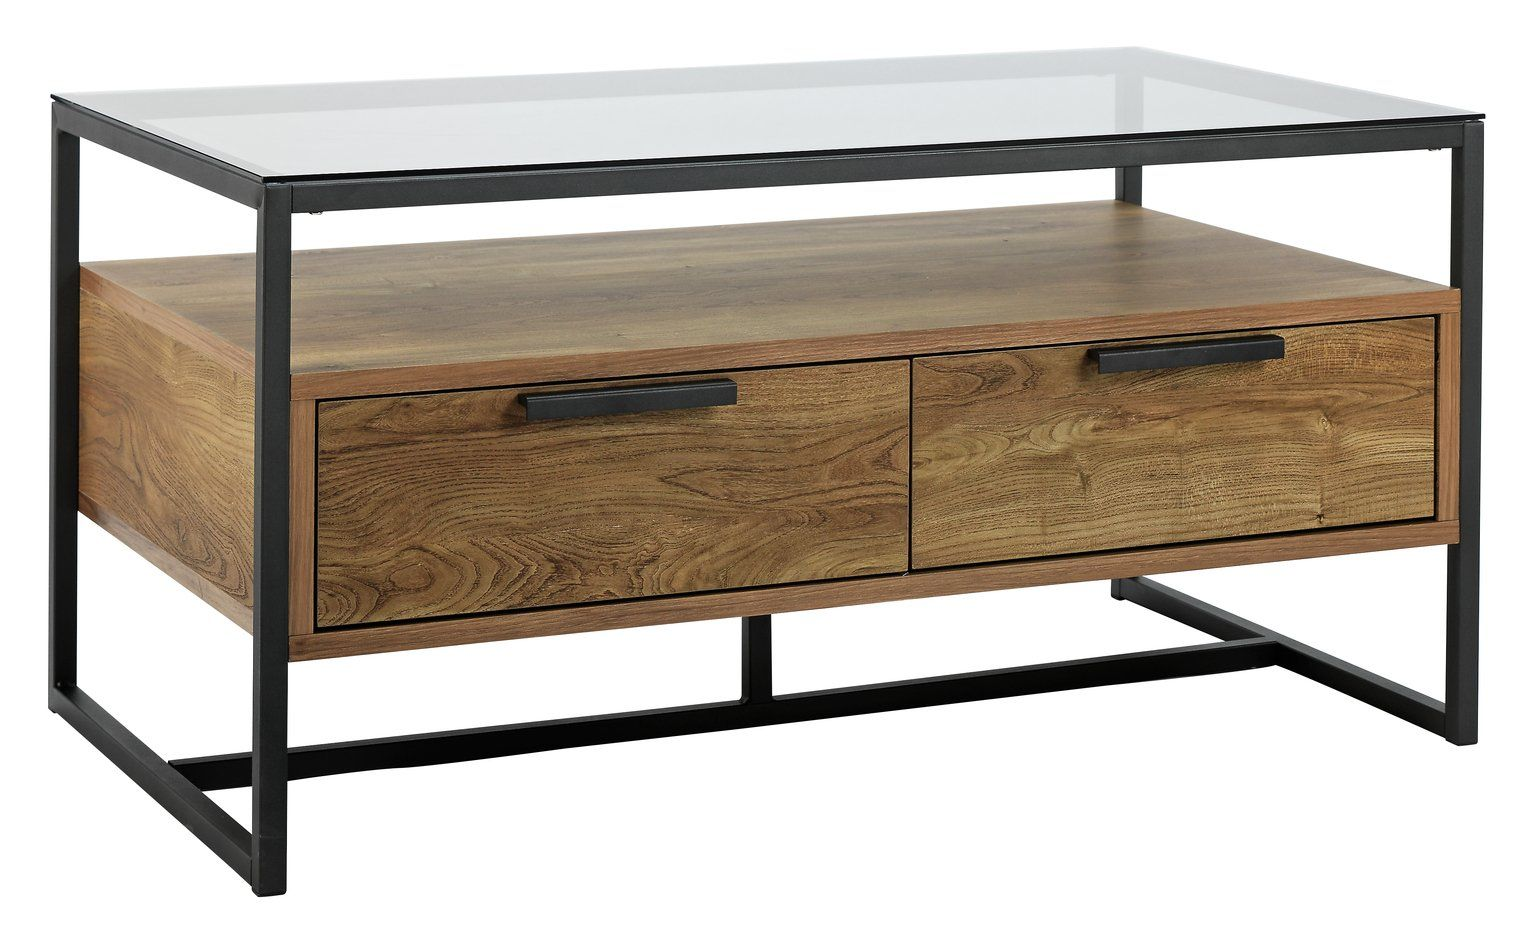 Industrial Coffee Table Oak Effect 185 Argos Corner Sofa Coffee Table Coffee Table Argos Coffee Table With Storage